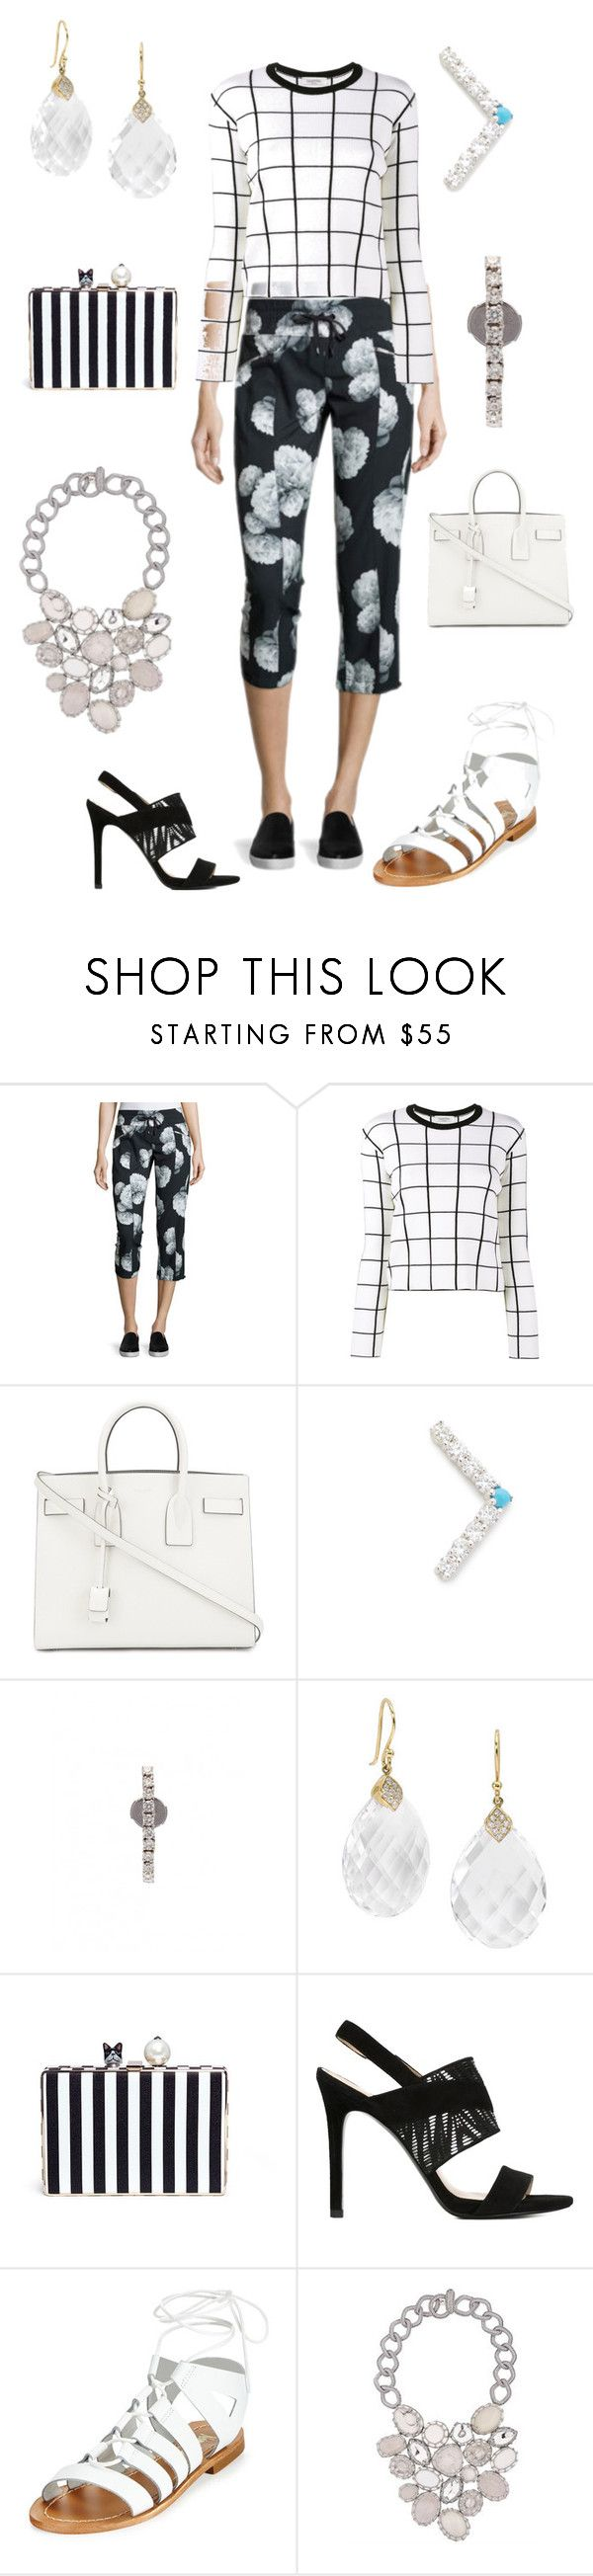 """""""walking behind you"""" by emmamegan-5678 ❤ liked on Polyvore featuring Marc New York, Valentino, Yves Saint Laurent, Fayt Jewelry, Yvonne Léon, Elizabeth Showers, Cecilia Ma, Stella Luna, Neiman Marcus and Boks & Baum"""